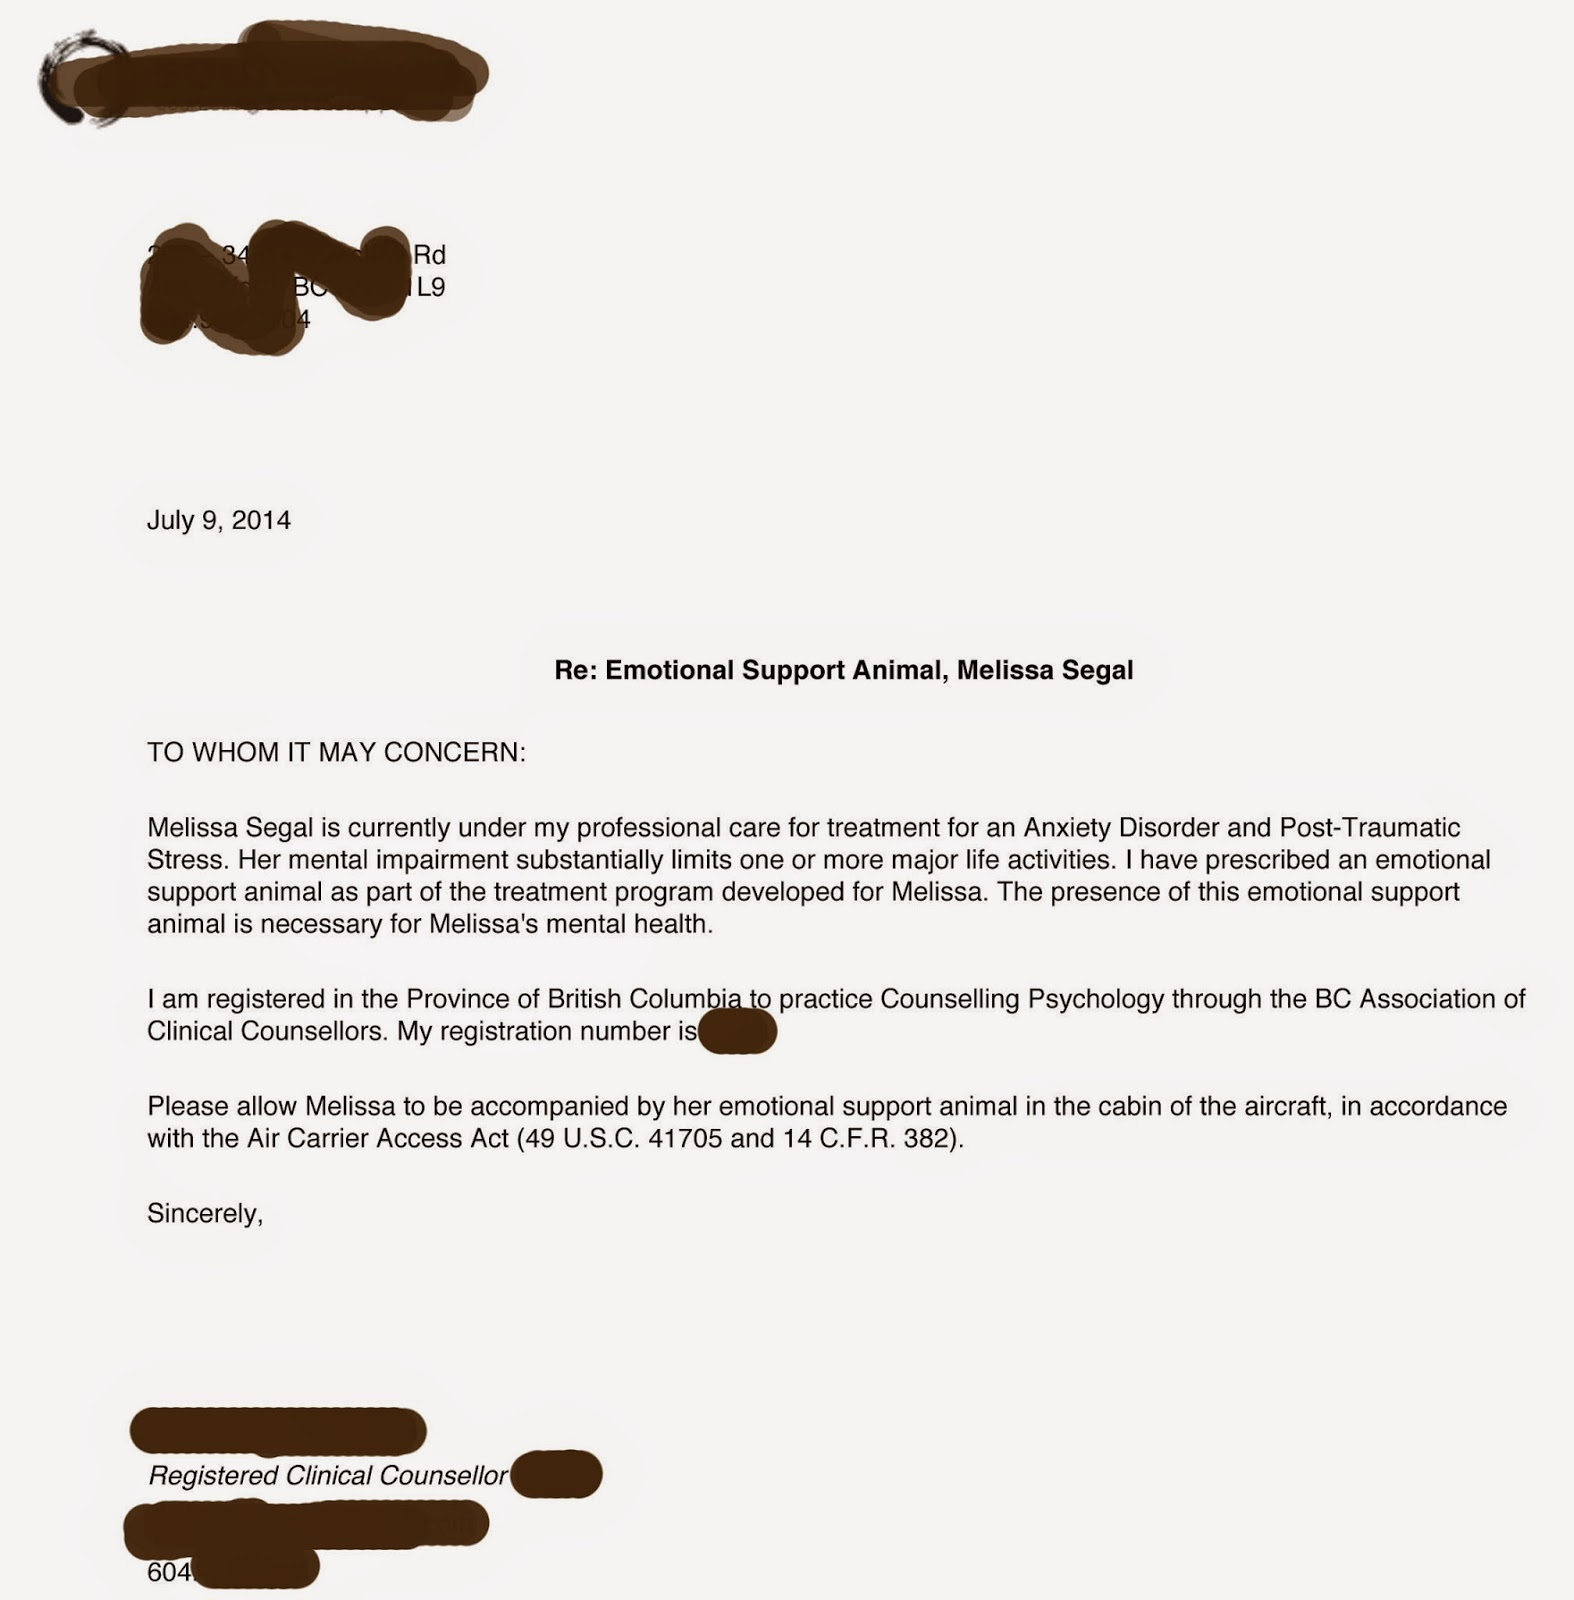 sample emotional support animal letter sample letter for emotional support sample business 24595 | supprtanimal